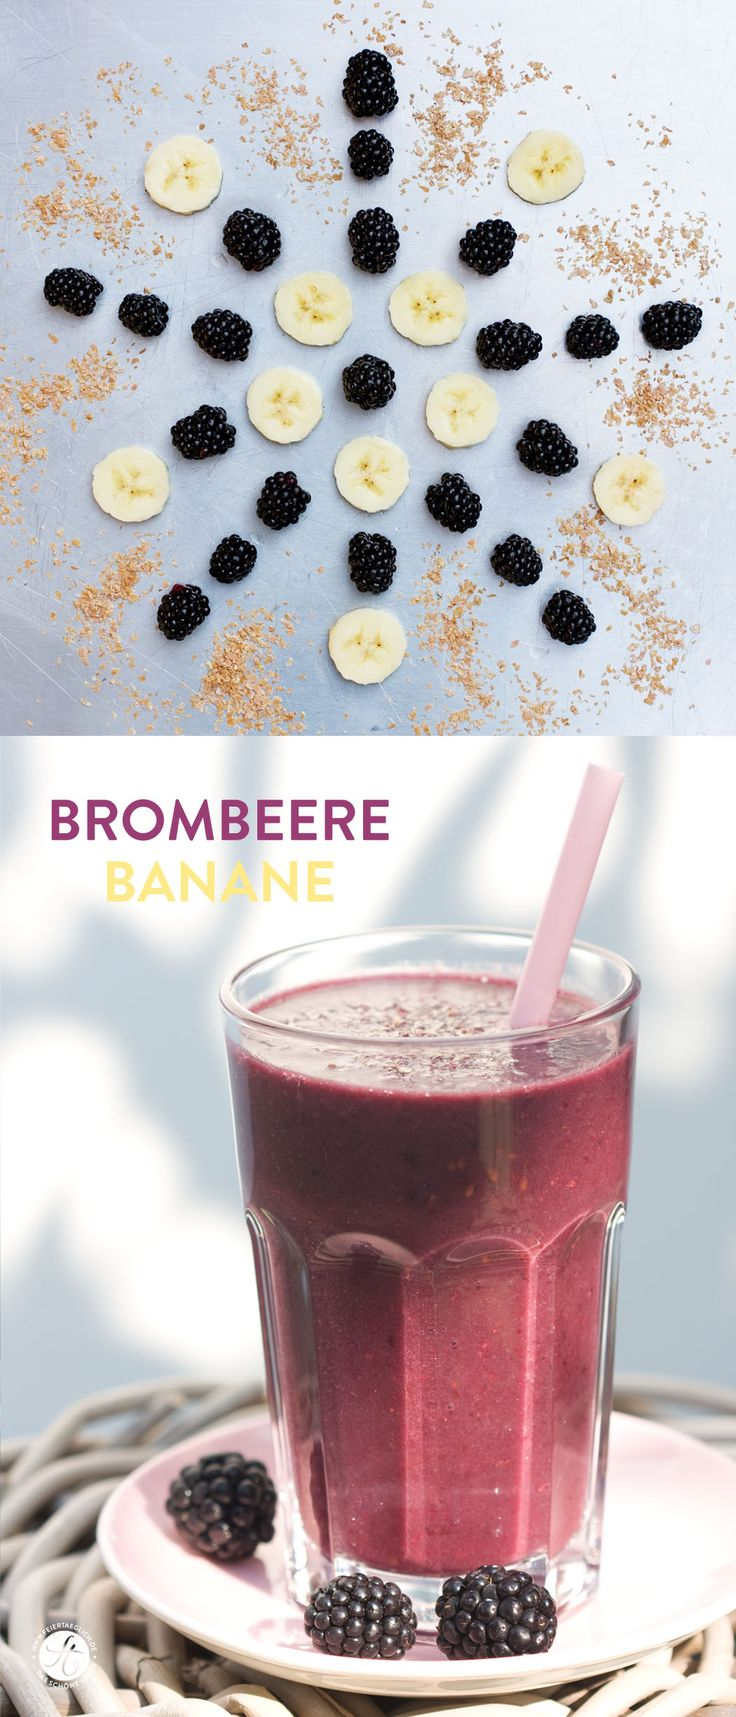 SmoothieMontag | Brombeere Banane Smoothie | Blackberry Banana Smoothie #feiertaeglich #smoothiemontag